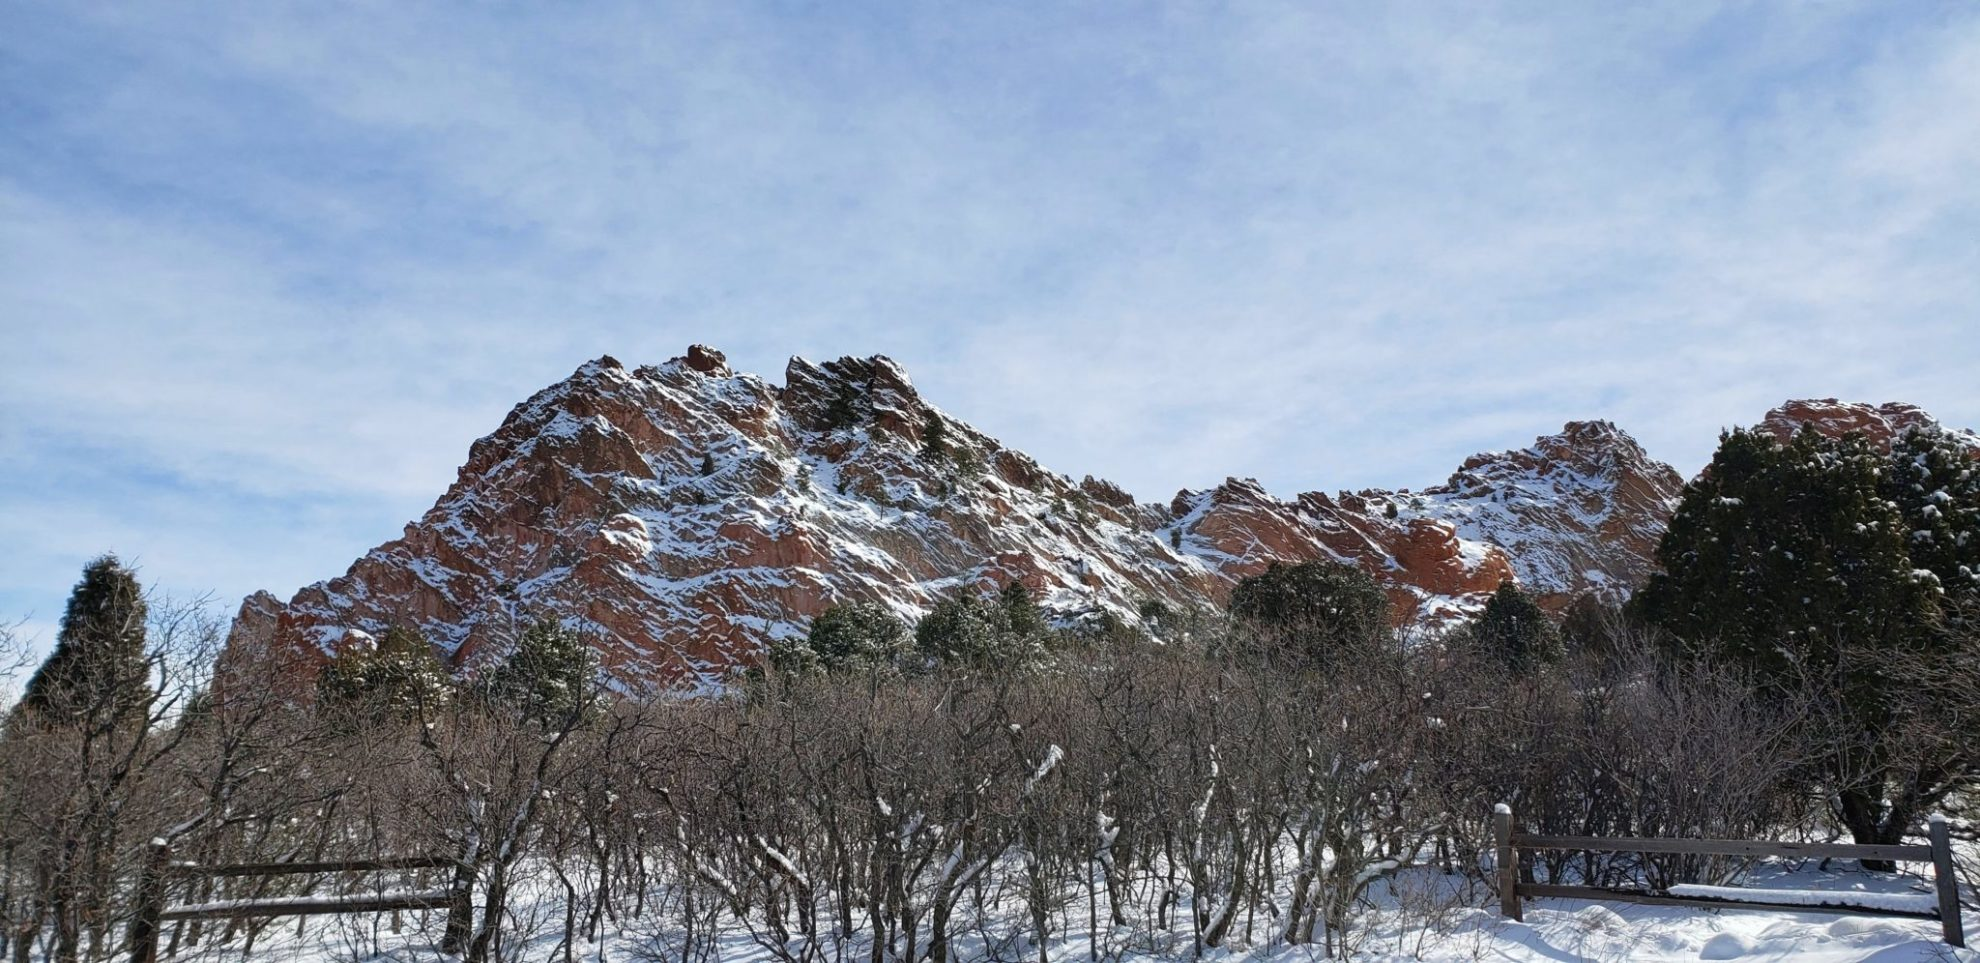 The red rocks and fresh snow create intricate patterns